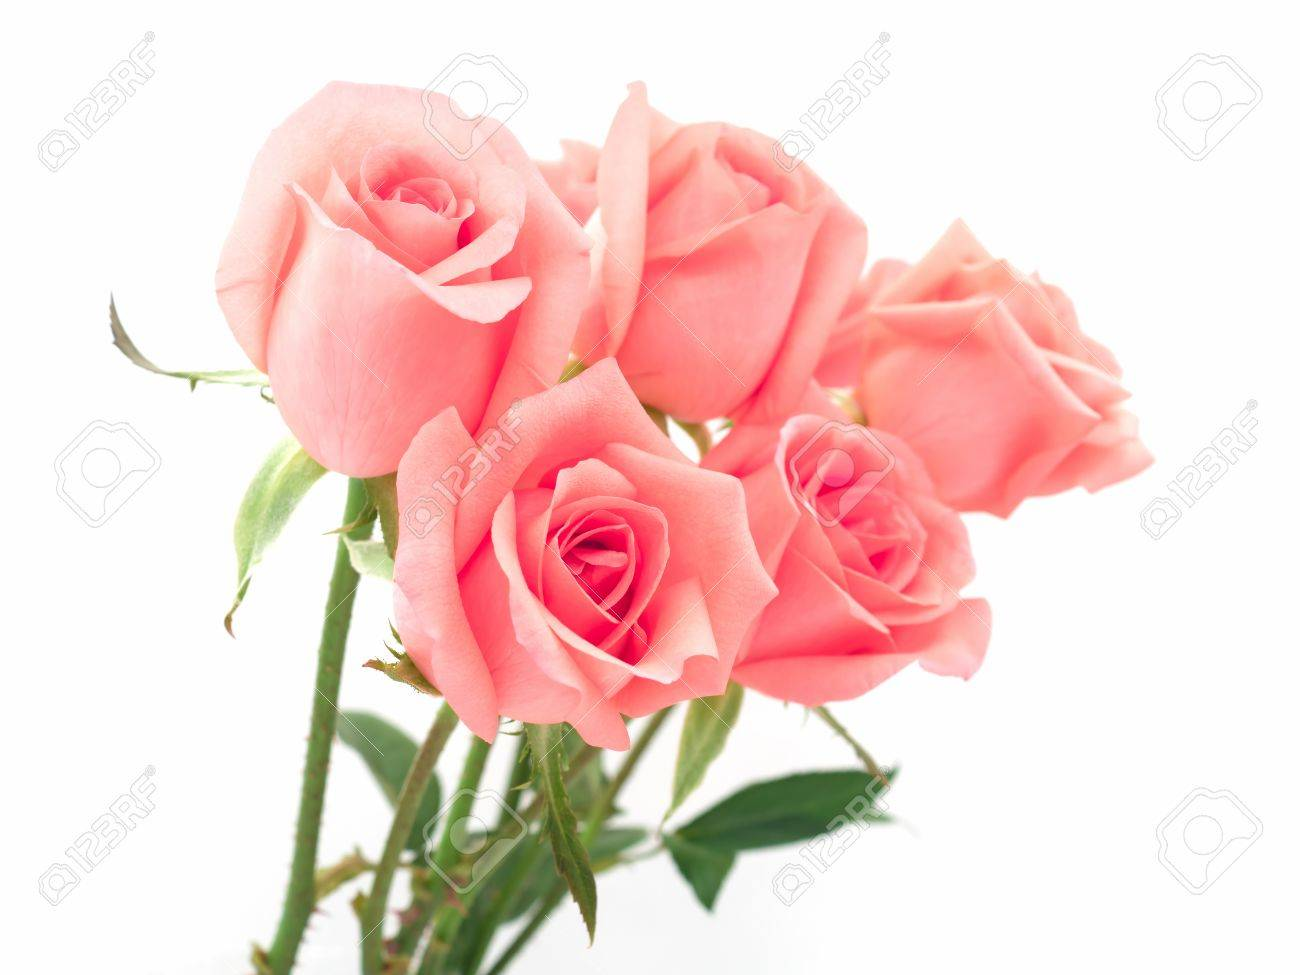 Isolate Image Of Beautiful Pink Rose Flower Bouquet On White Stock